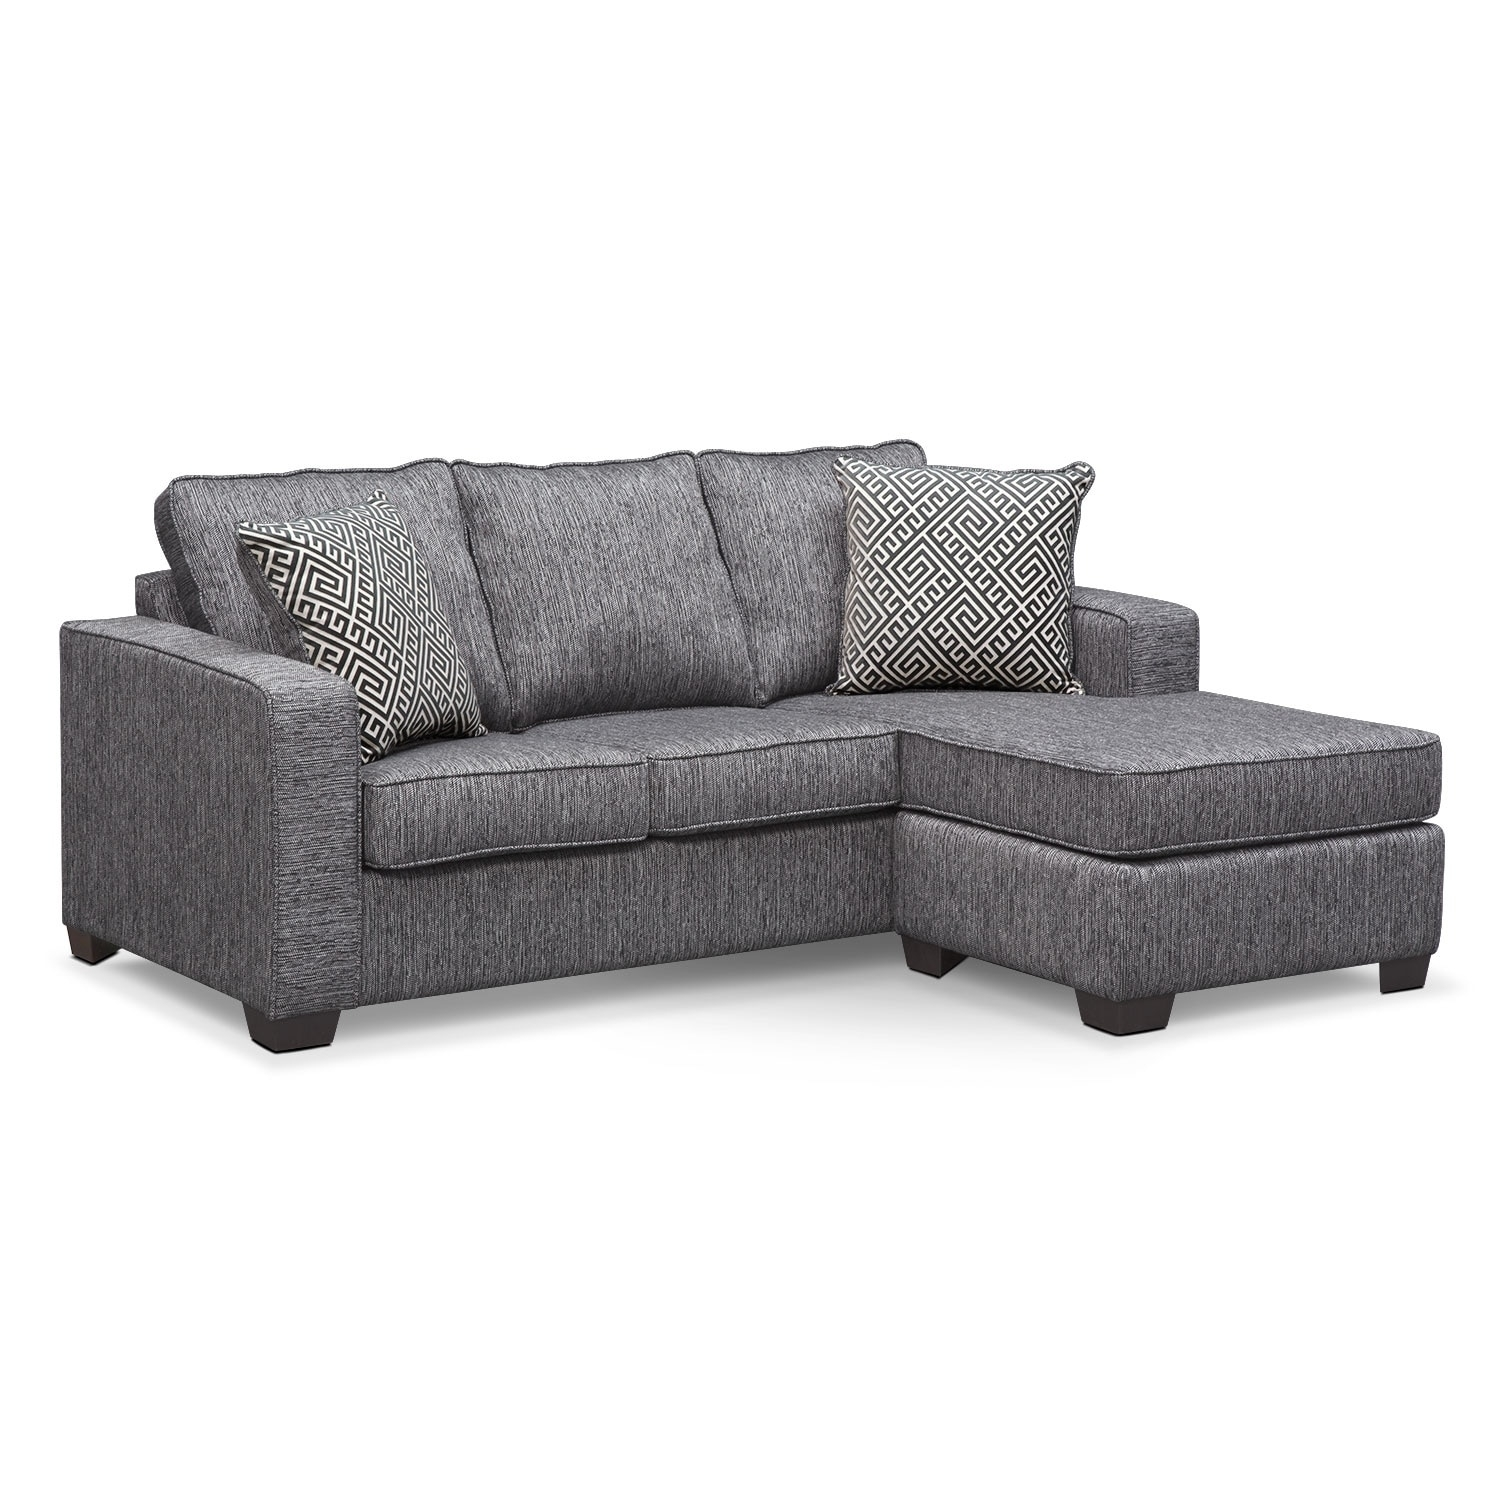 Chaise Sleeper Sofa | Furniture On Applications with Taren Reversible Sofa/chaise Sleeper Sectionals With Storage Ottoman (Image 4 of 30)